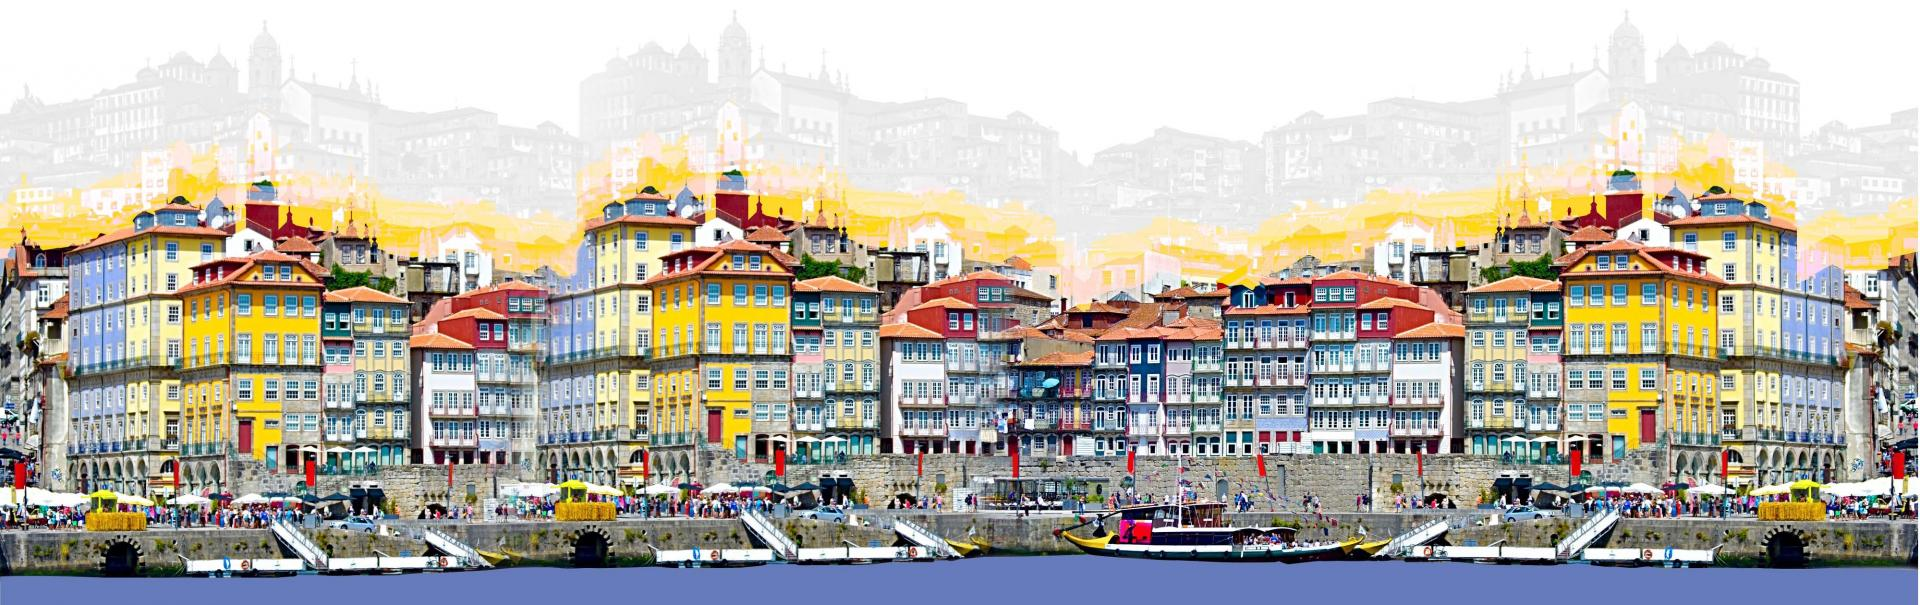 EOS Annual Meeting (EOSAM), 7 - 11 September 2020 in Porto Portugal